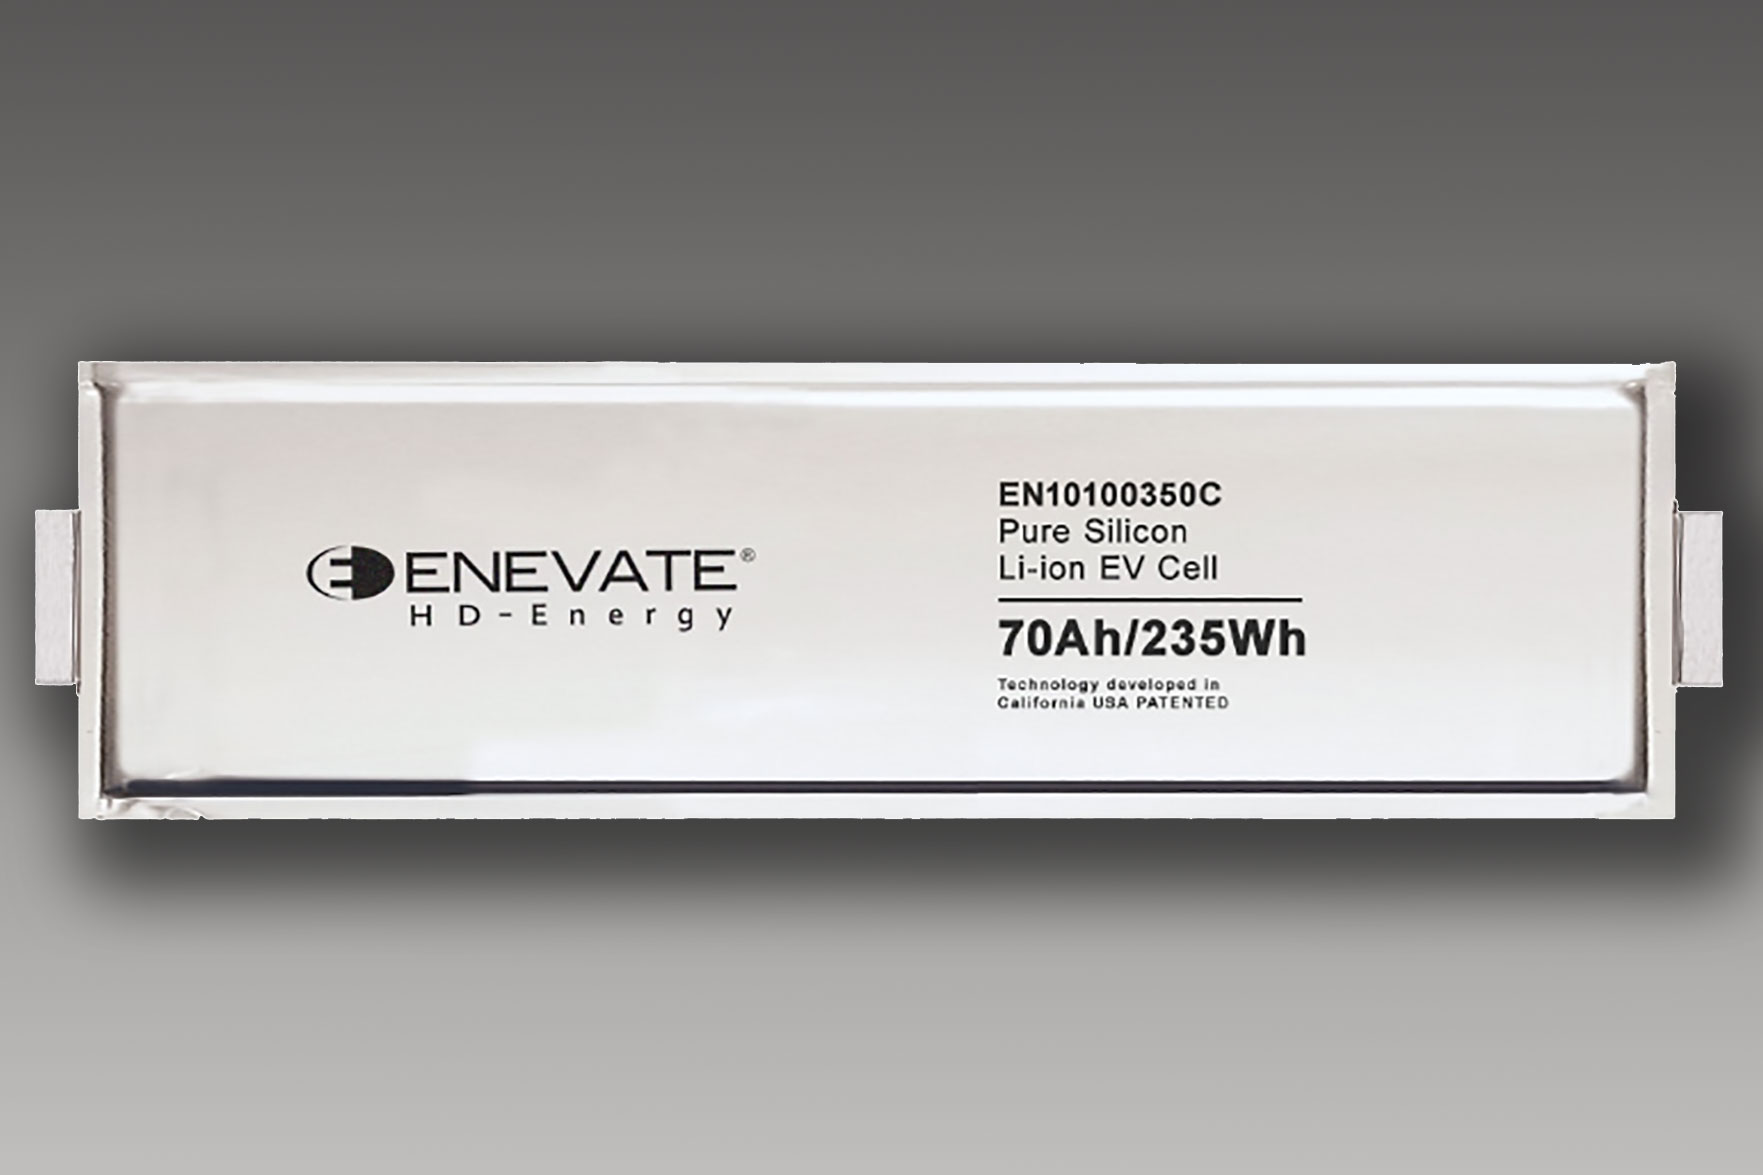 Enevate's silicon anode technology massively boosts charging speeds, and also delivers a 30% bump in energy density for EV batteries